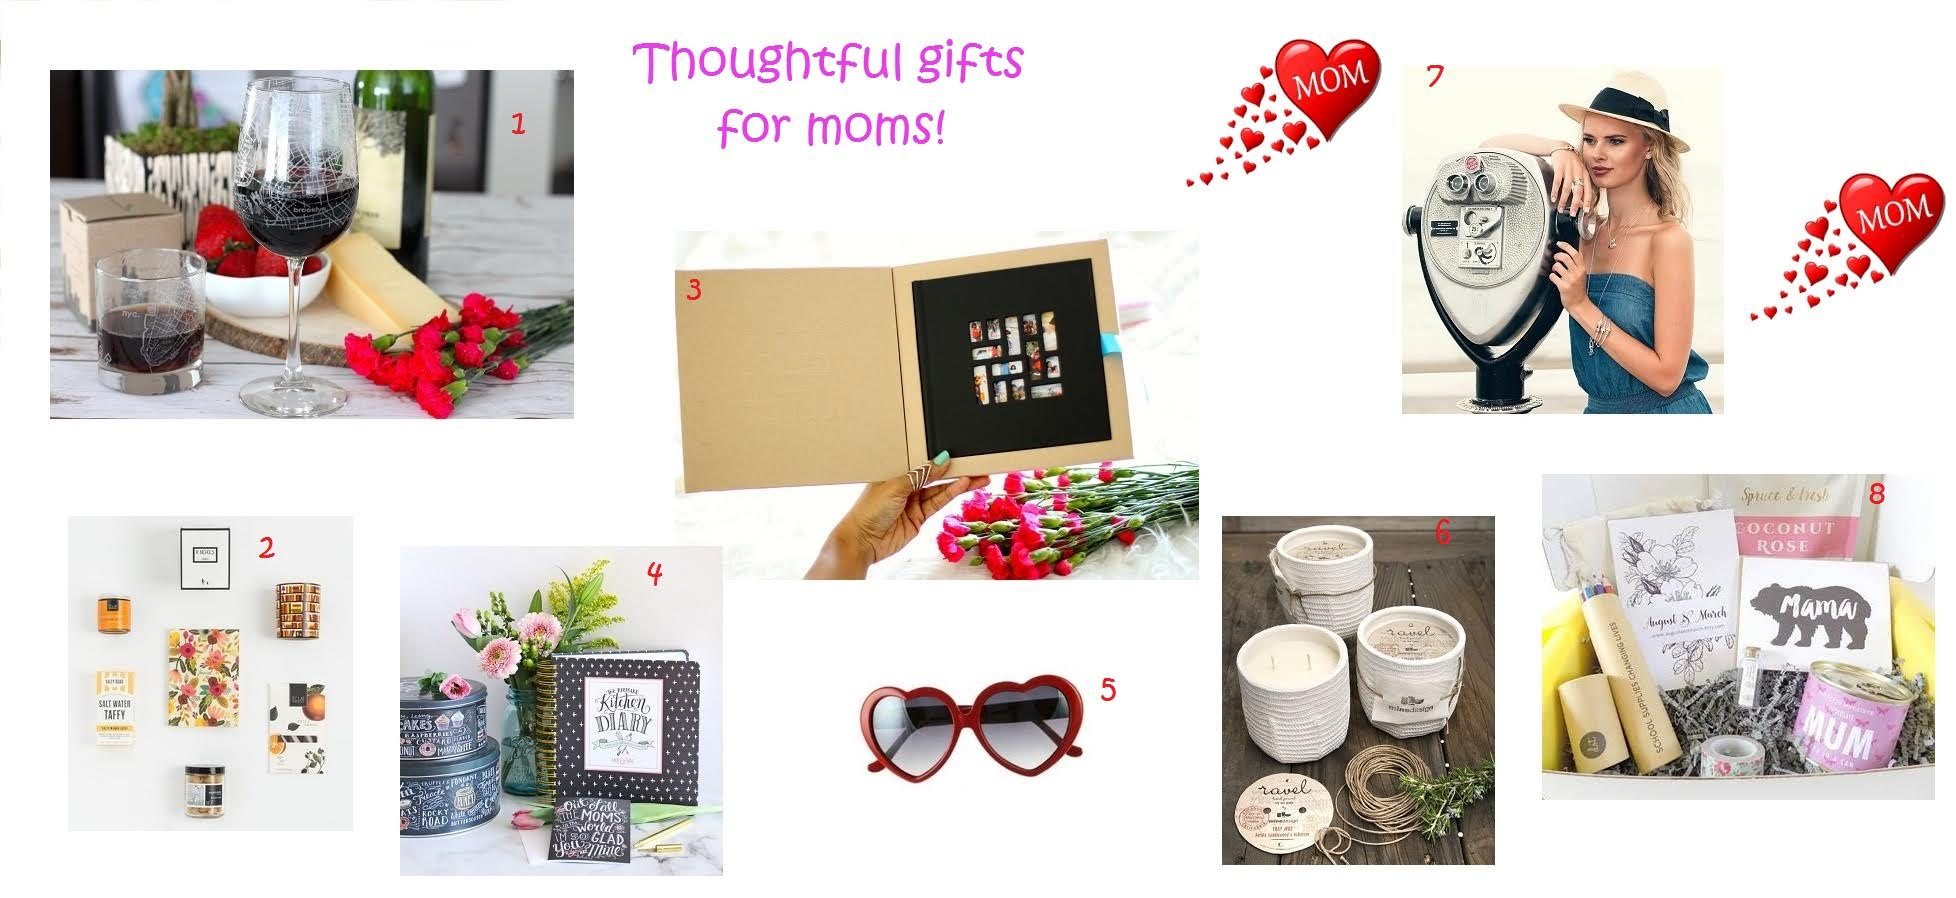 Thoughtful Gifts Ideas for Moms This Mother's day! - FabZlist